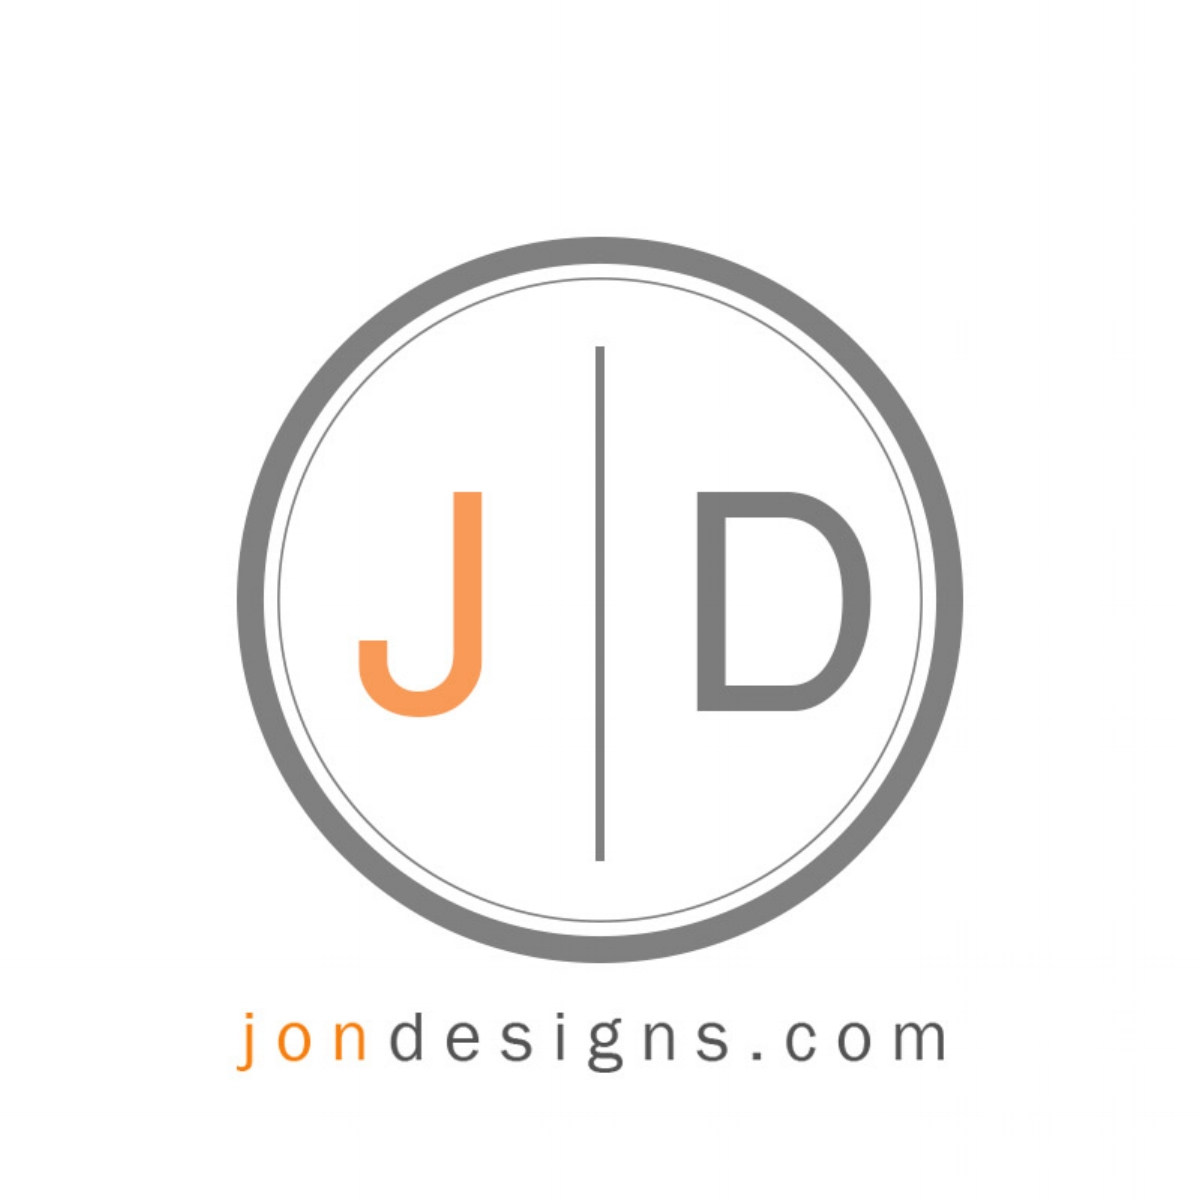 JonDesigns.com LLC